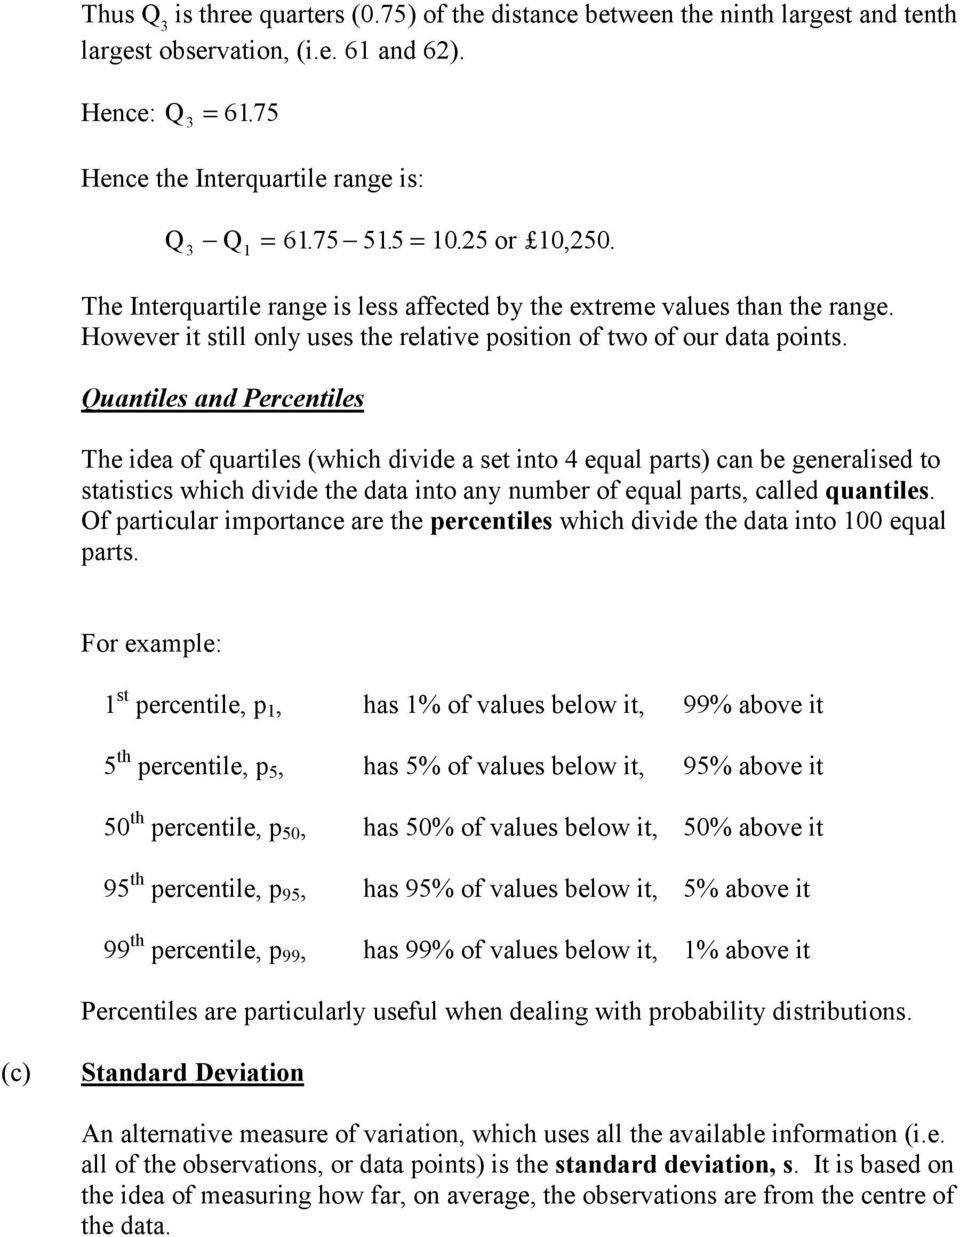 Quantiles and Percentiles The idea of quartiles (which divide a set into 4 equal parts) can be generalised to statistics which divide the data into any number of equal parts, called quantiles.